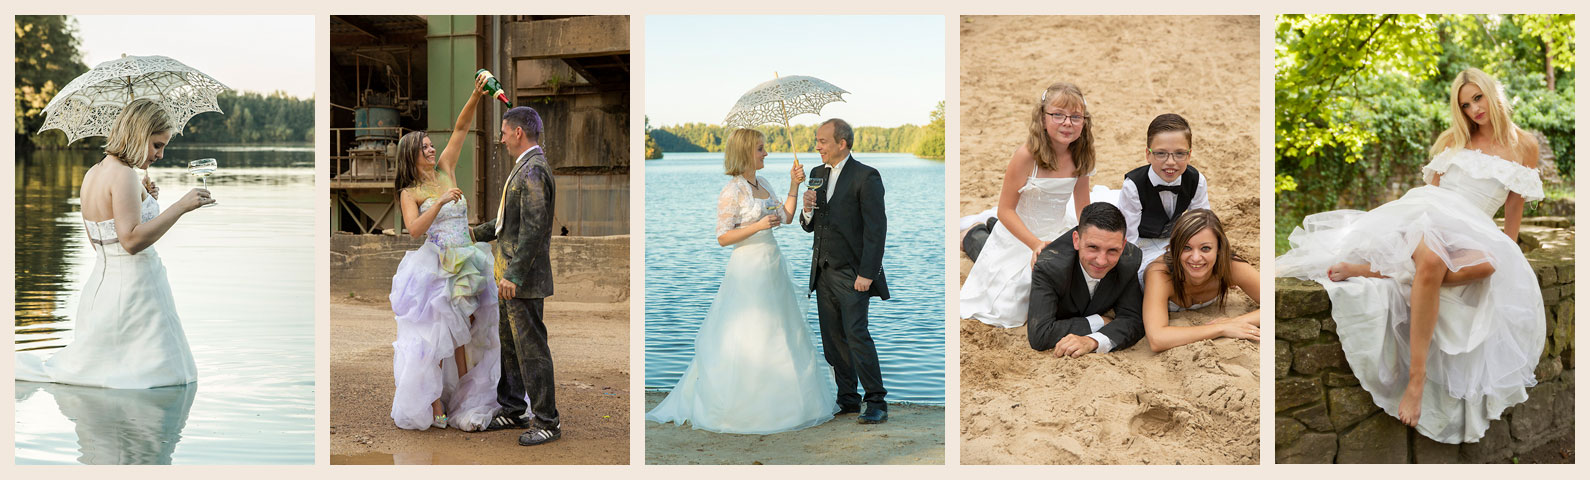 After Wedding - Trash-the-dress Shooting - Fotograf OWL - Kreis Lippe - Fotostudio Kalletal